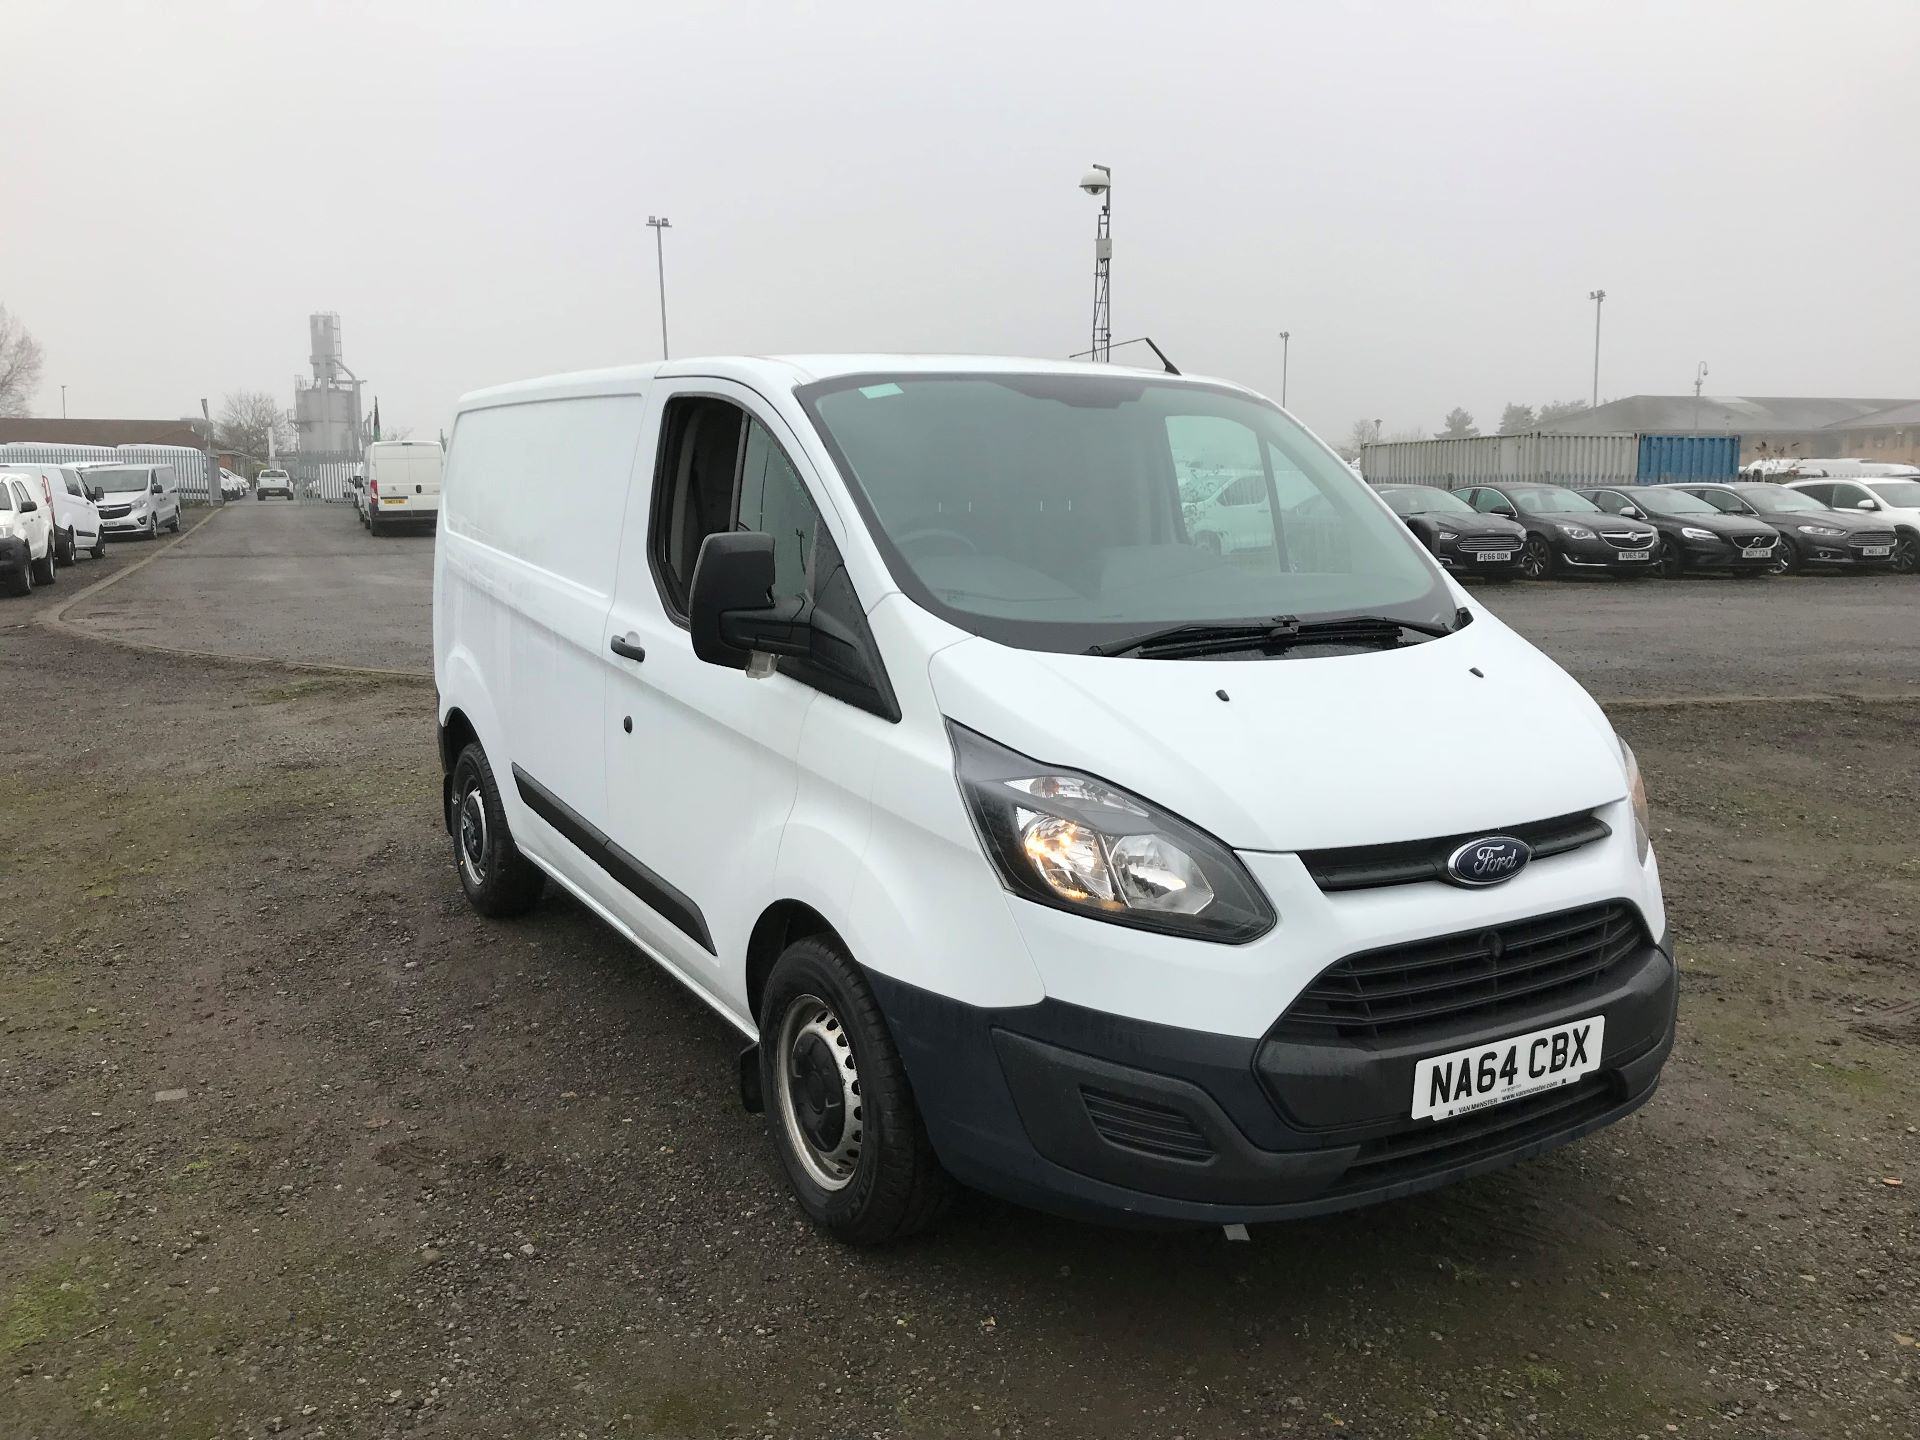 2014 Ford Transit Custom 2.2 Tdci 100Ps Low Roof Van (NA64CBX)